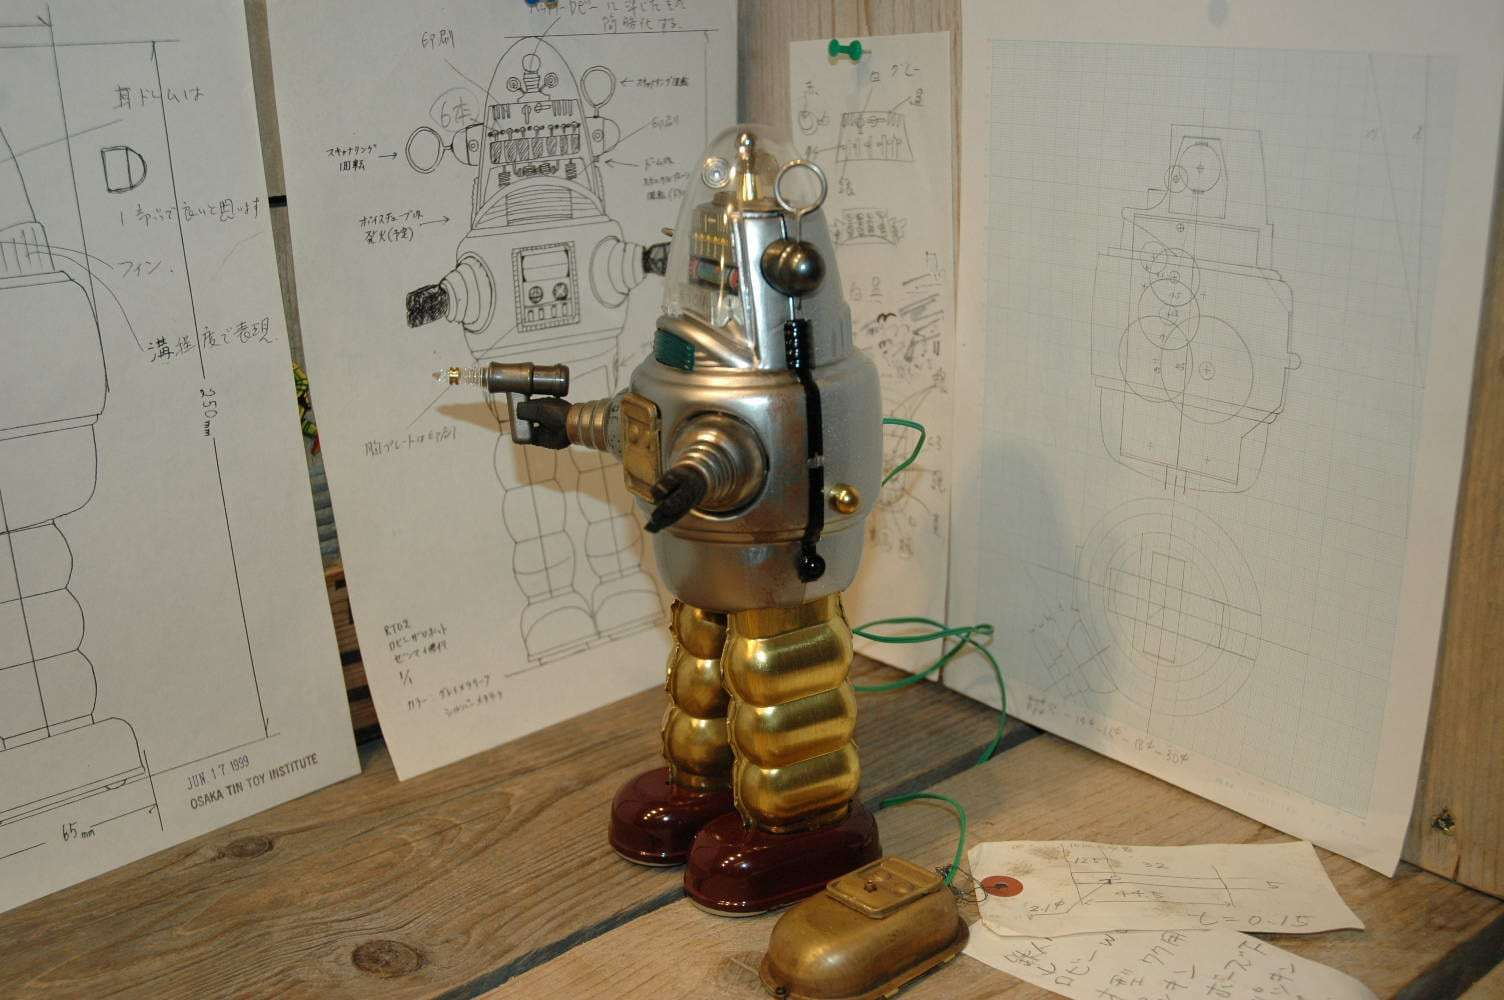 Osaka Tin Toy Institute - Robby the Robot Prototype